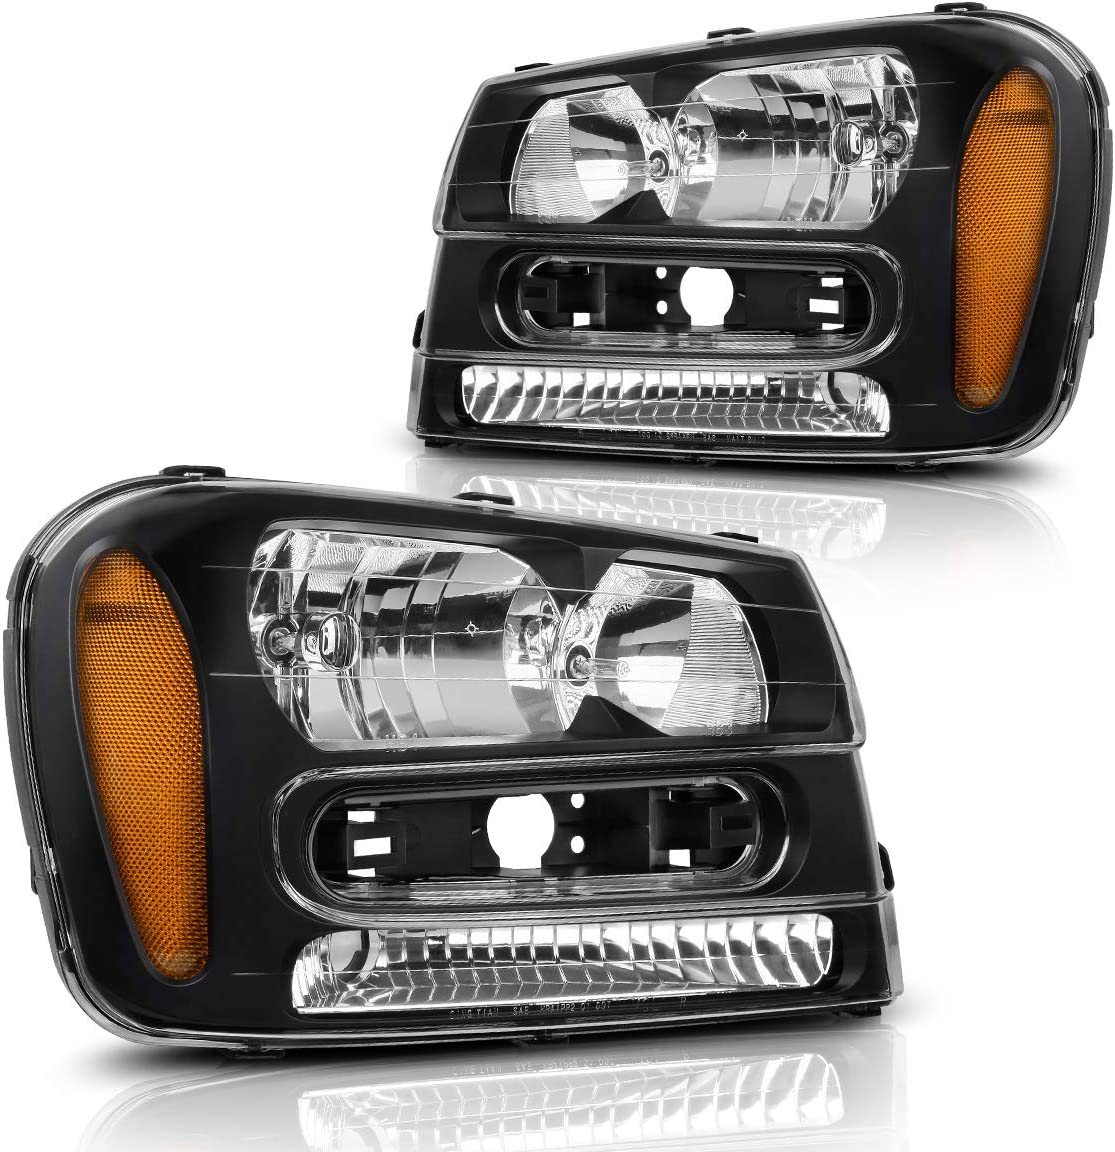 AUTOSAVER88 Headlights Assembly Compatible with 2002-2009 Trailblazer W/Full Width Grille Headlamp Replacement Amber Reflector(Except Compatible with 2006-2009 LT models, Pair)